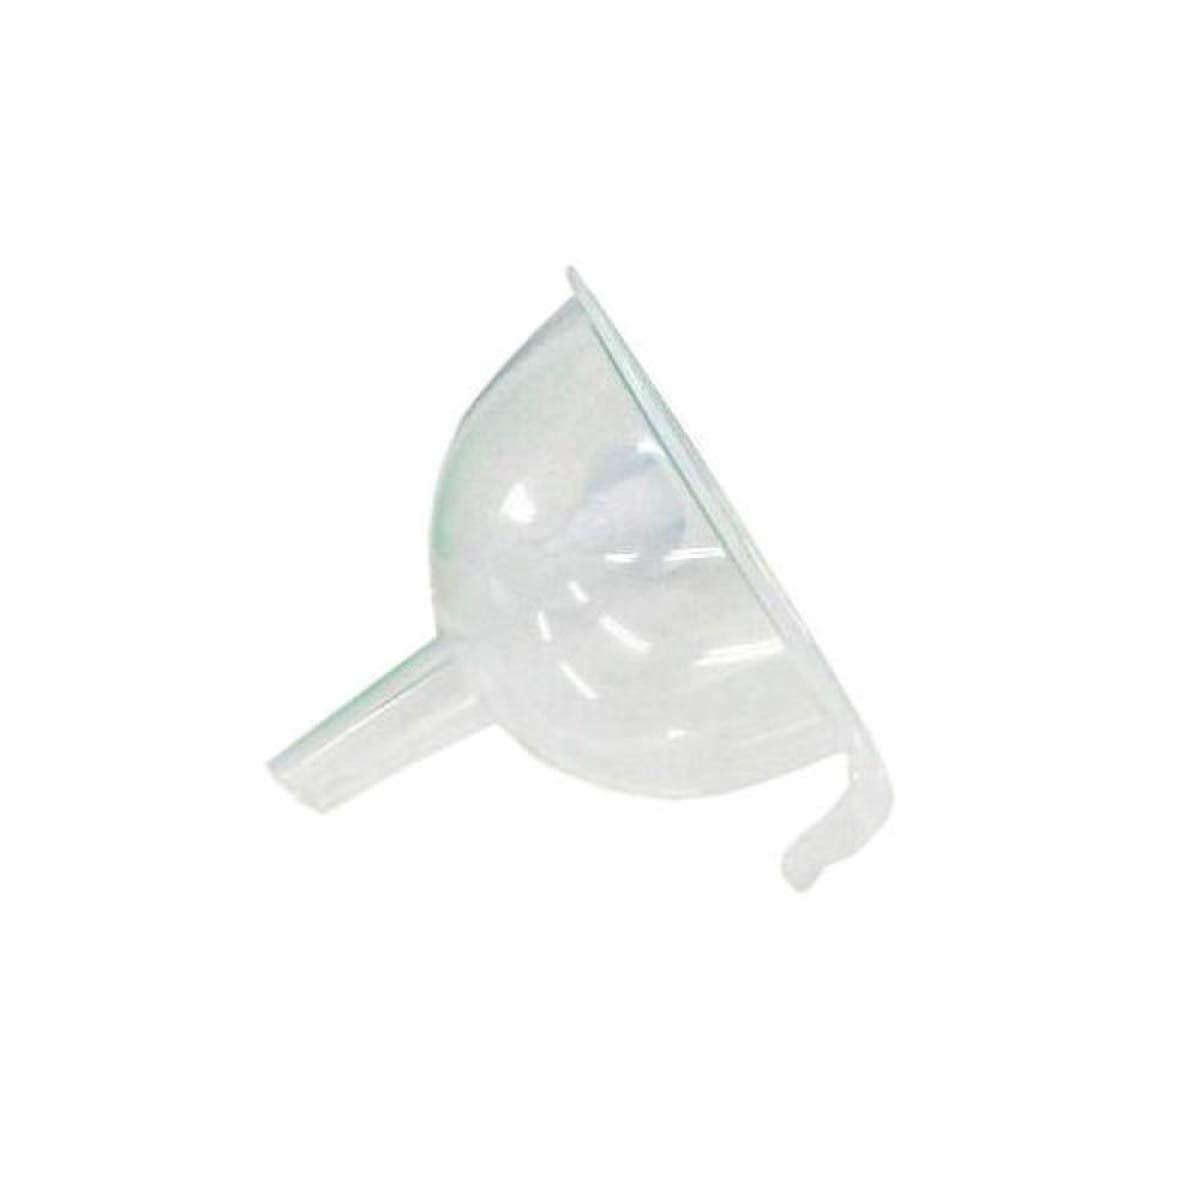 Japanese Plastic Small Clear Funnel (2 pieces)